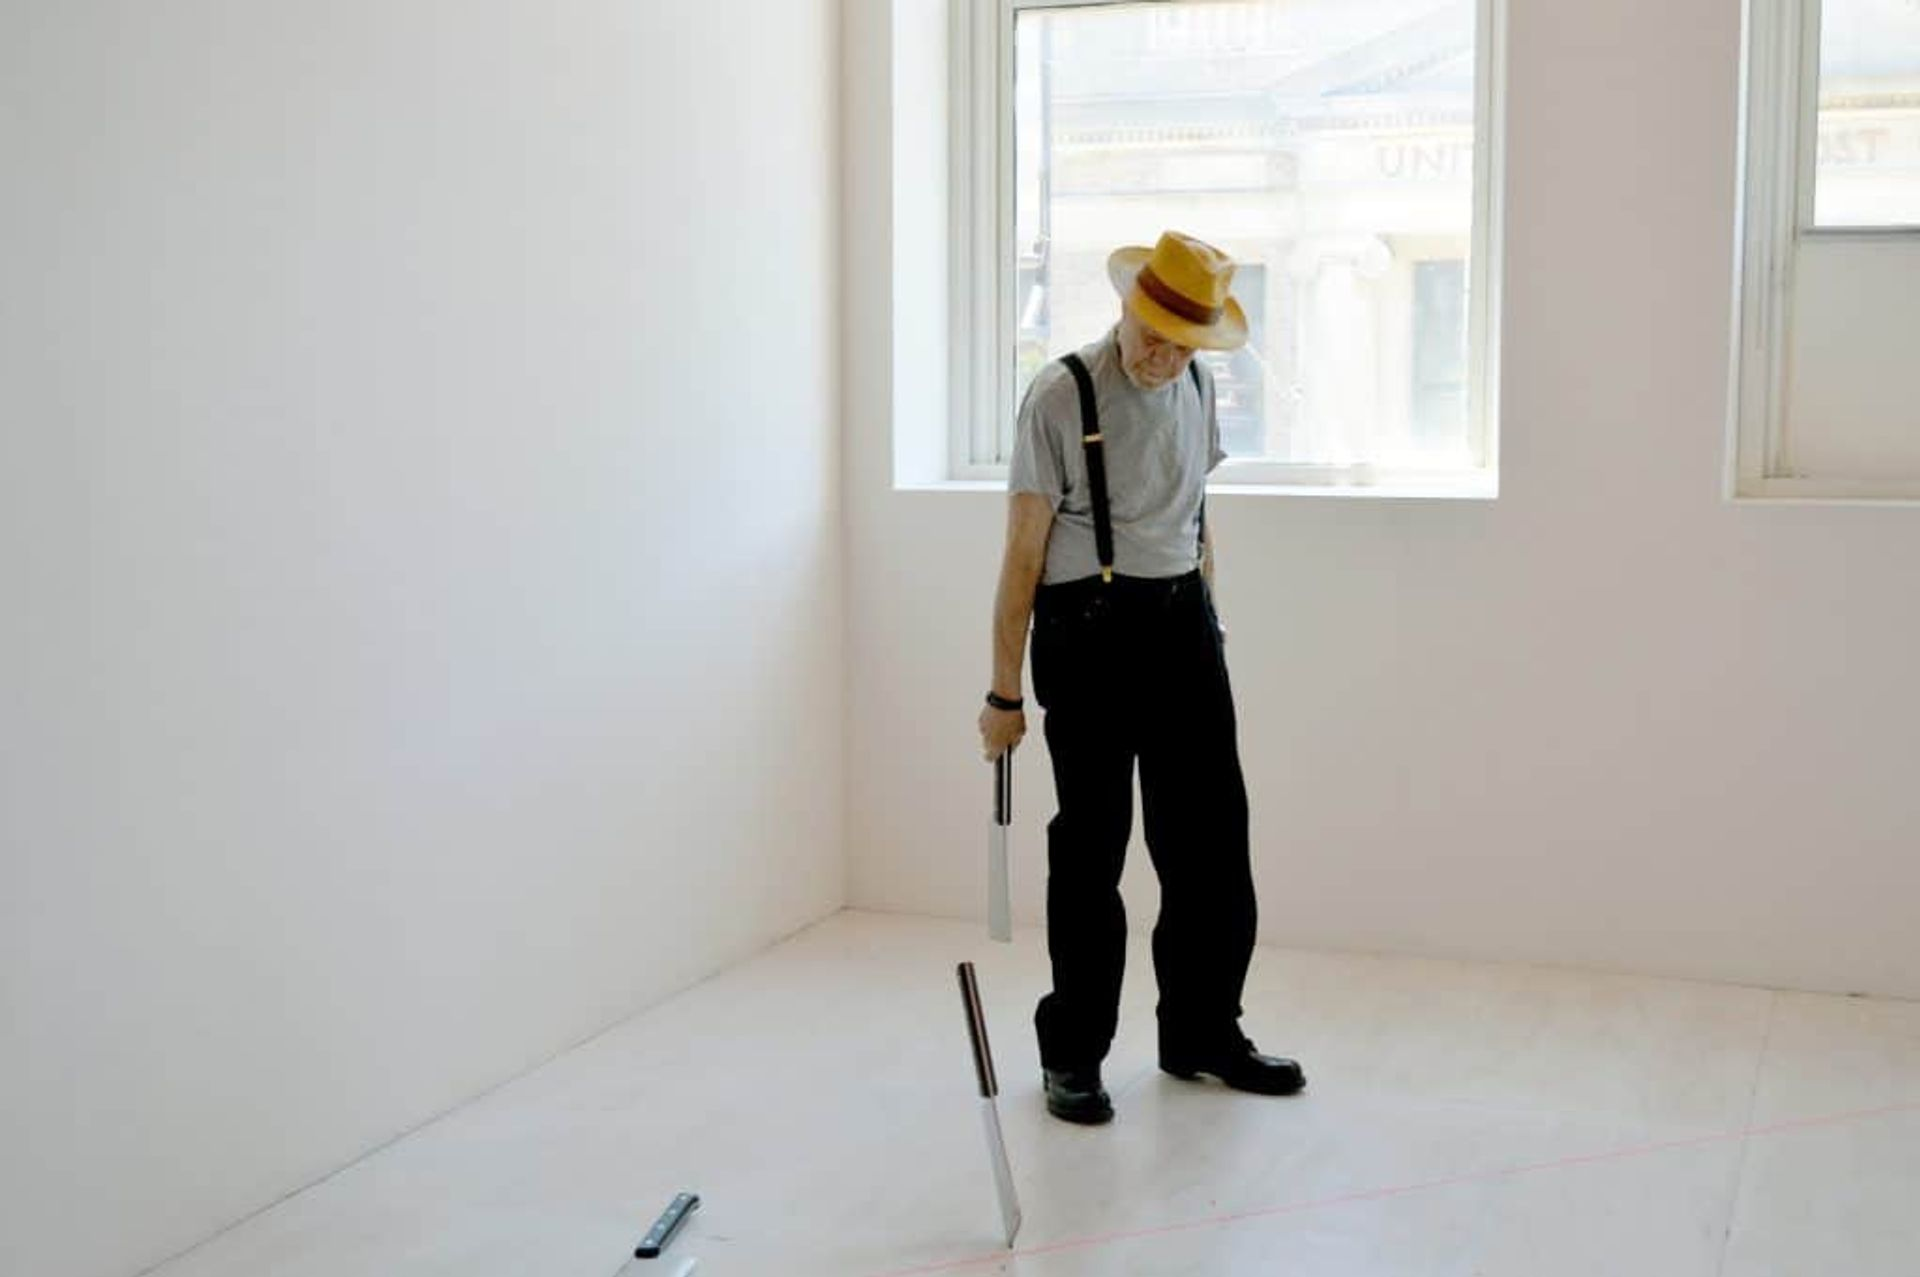 Barry Le Va installing Four (Cleaved Floor) at MoMA PS1 in New York in 2016 © Barry Le Va. Photo: C. J. Nolan, David Nolan Gallery, New York